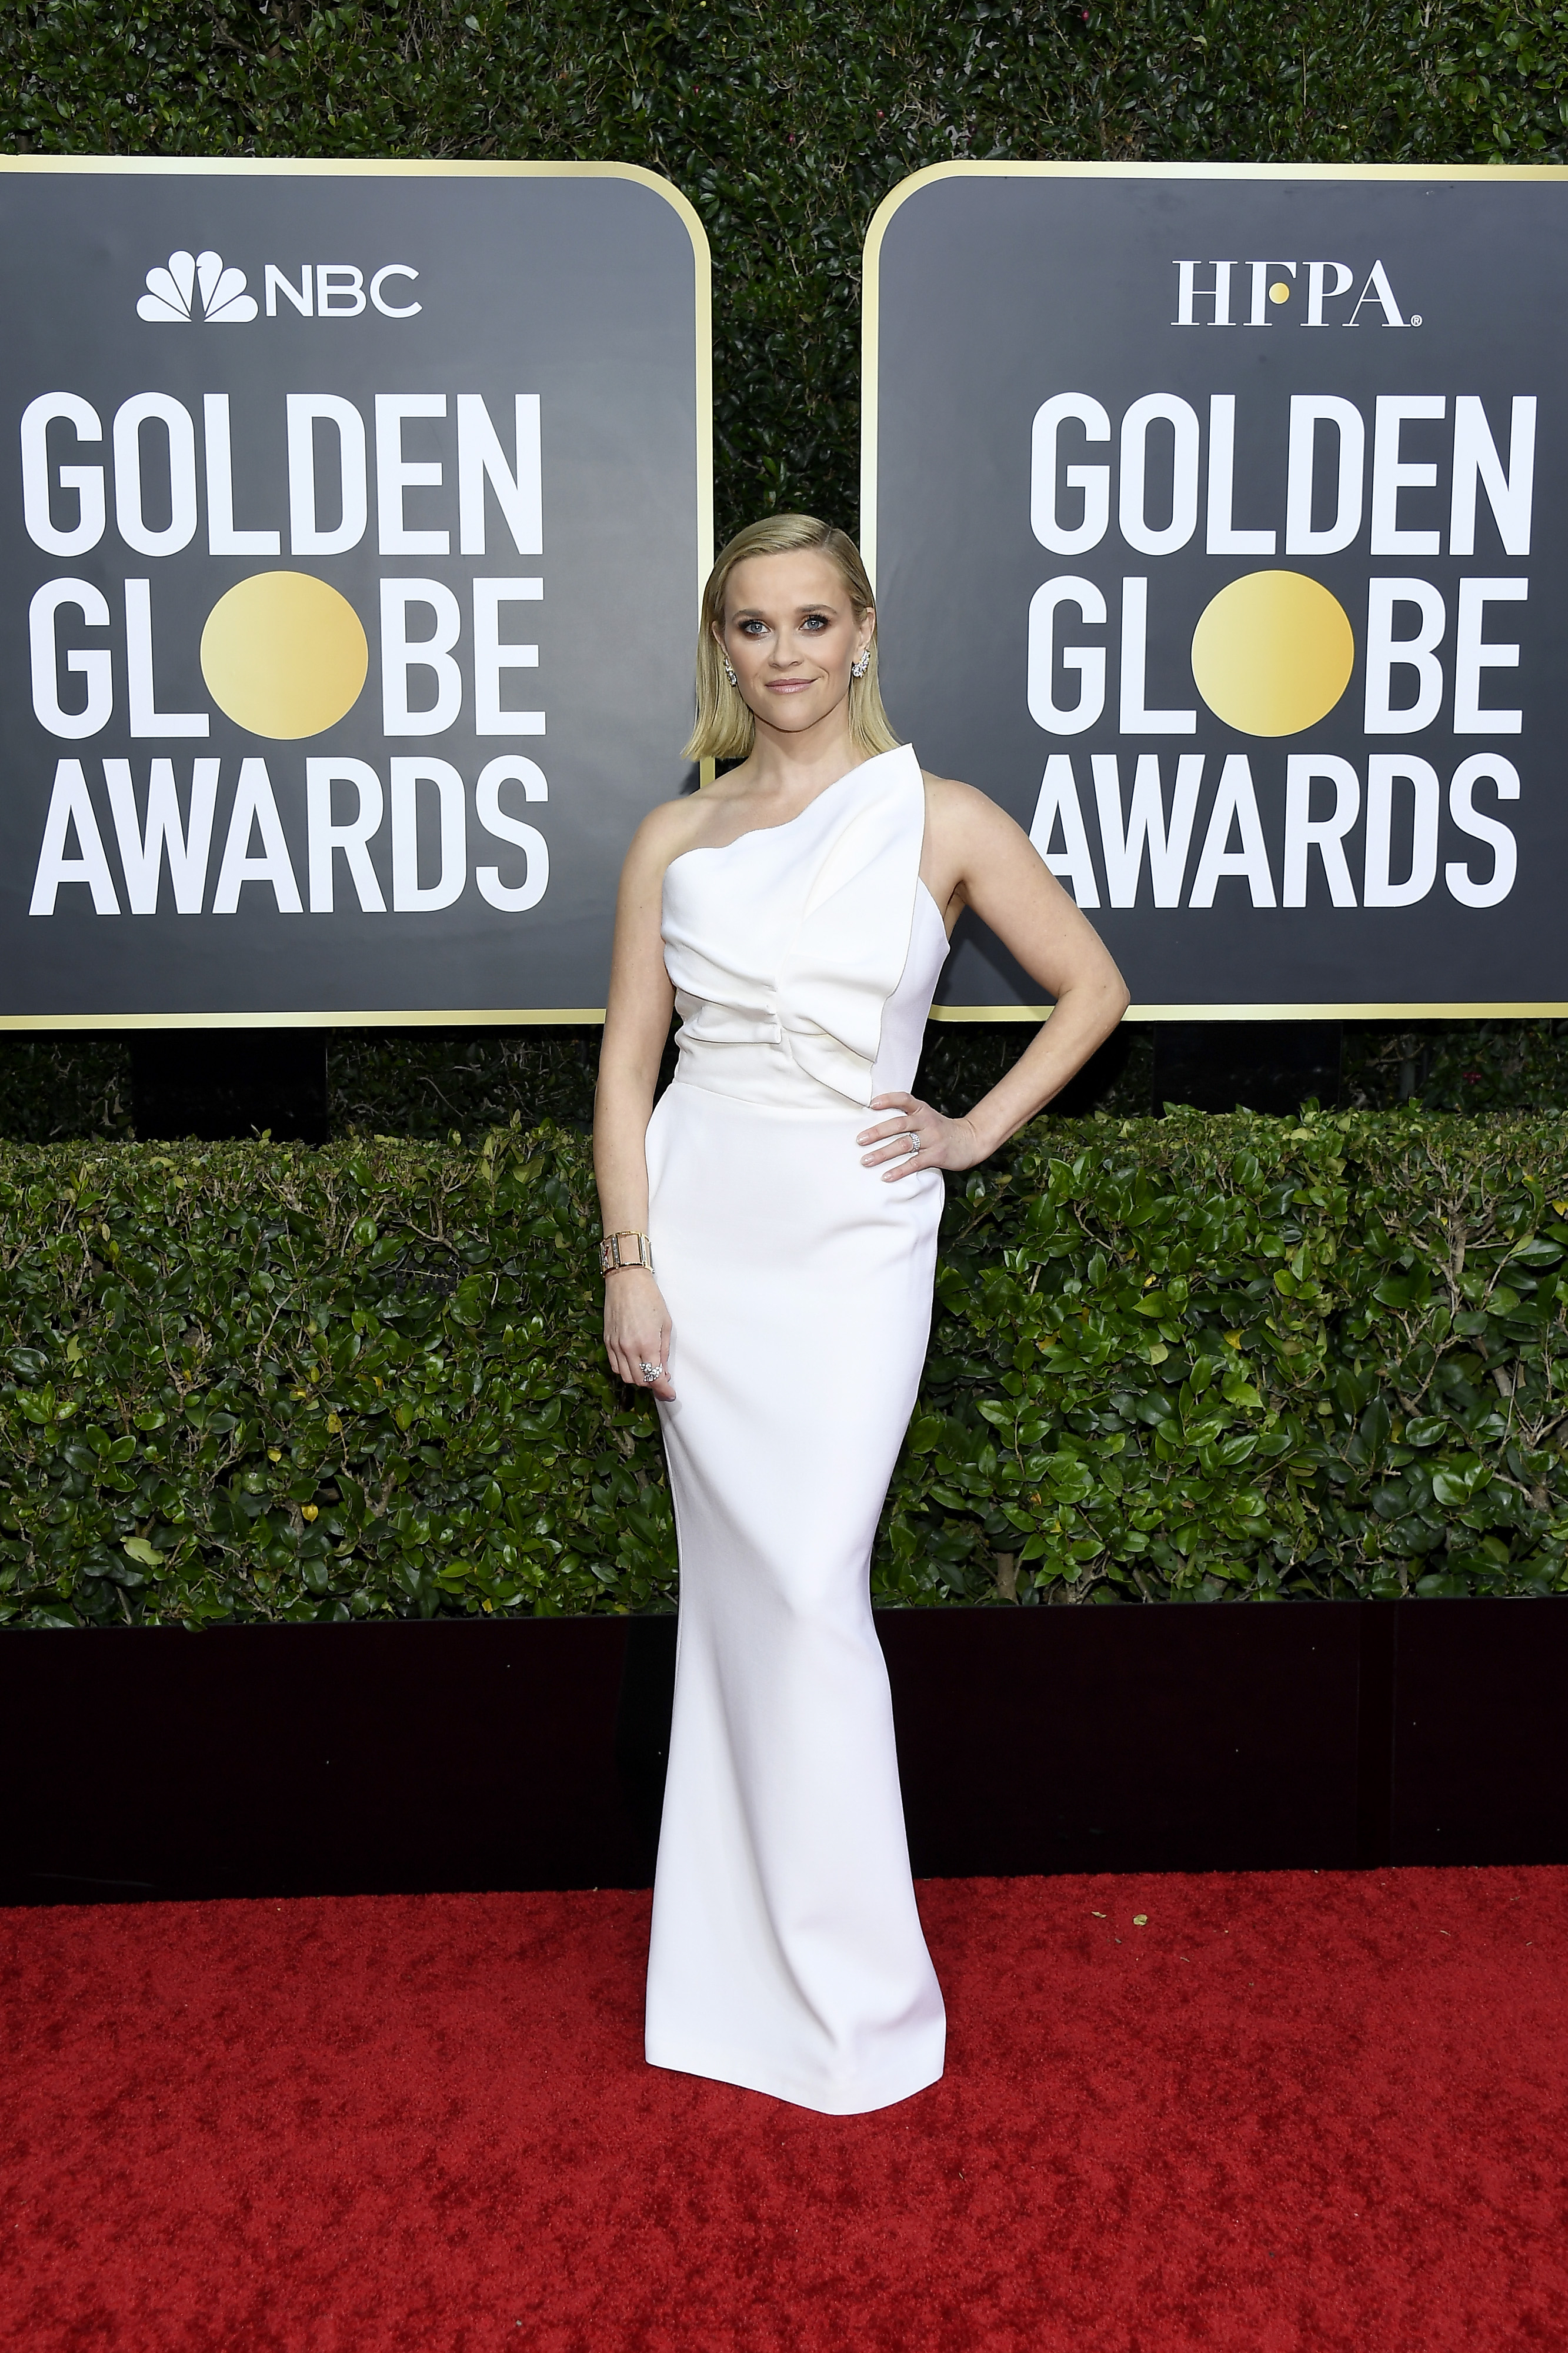 BEVERLY HILLS, CALIFORNIA - JANUARY 05: 77th ANNUAL GOLDEN GLOBE AWARDS -- Pictured: Reese Witherspoon arrives to the 77th Annual Golden Globe Awards held at the Beverly Hilton Hotel on January 5, 2020. -- (Photo by: Kevork Djansezian/NBC/NBCU Photo Bank via Getty Images)